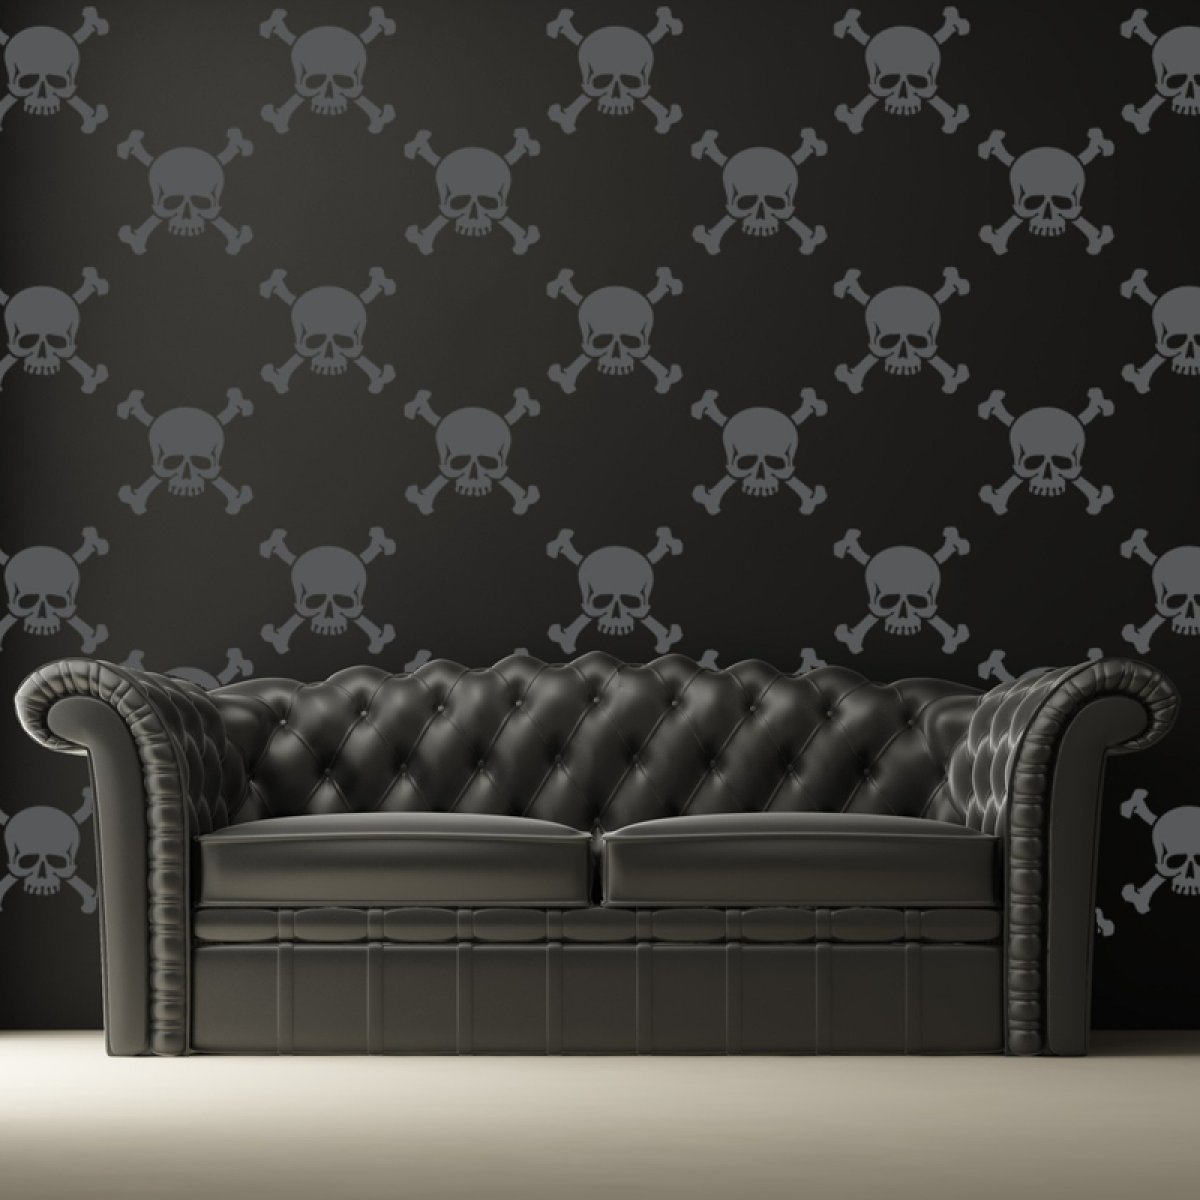 home skull wallpaper - google search | gothic home decor